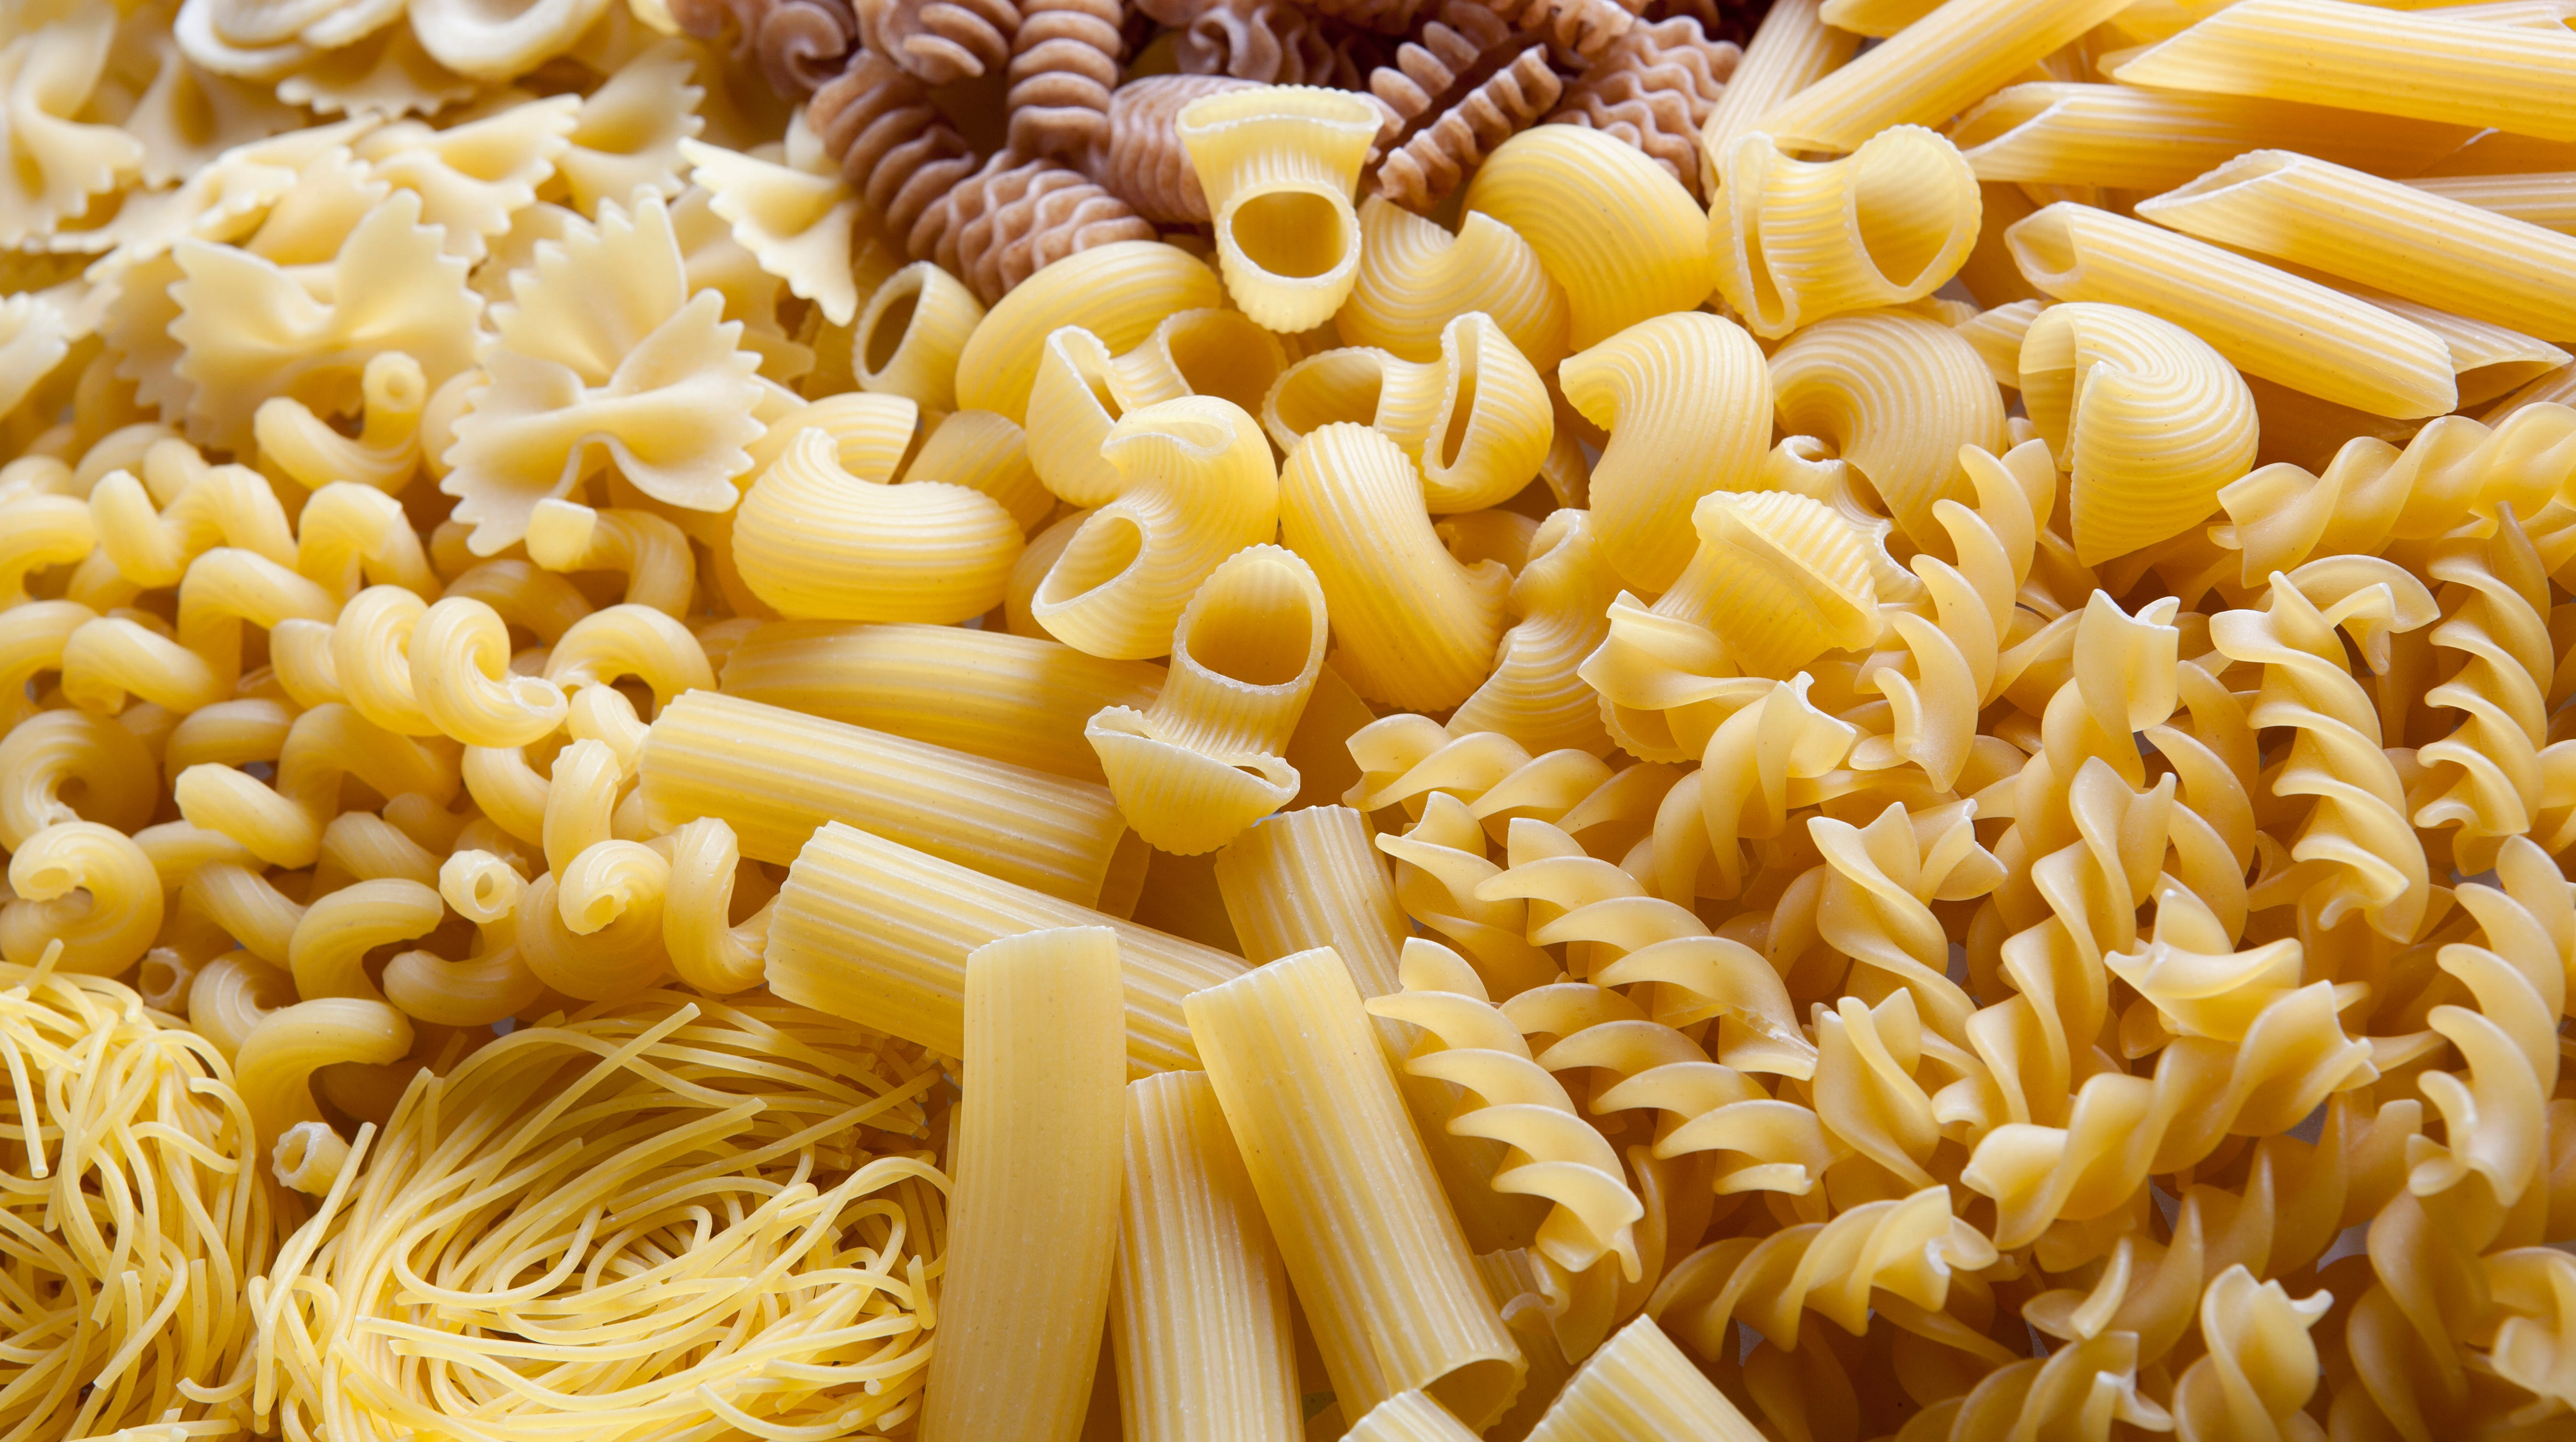 New research says cutting carbs could actually limit lifespan, increasing risk of an early death.